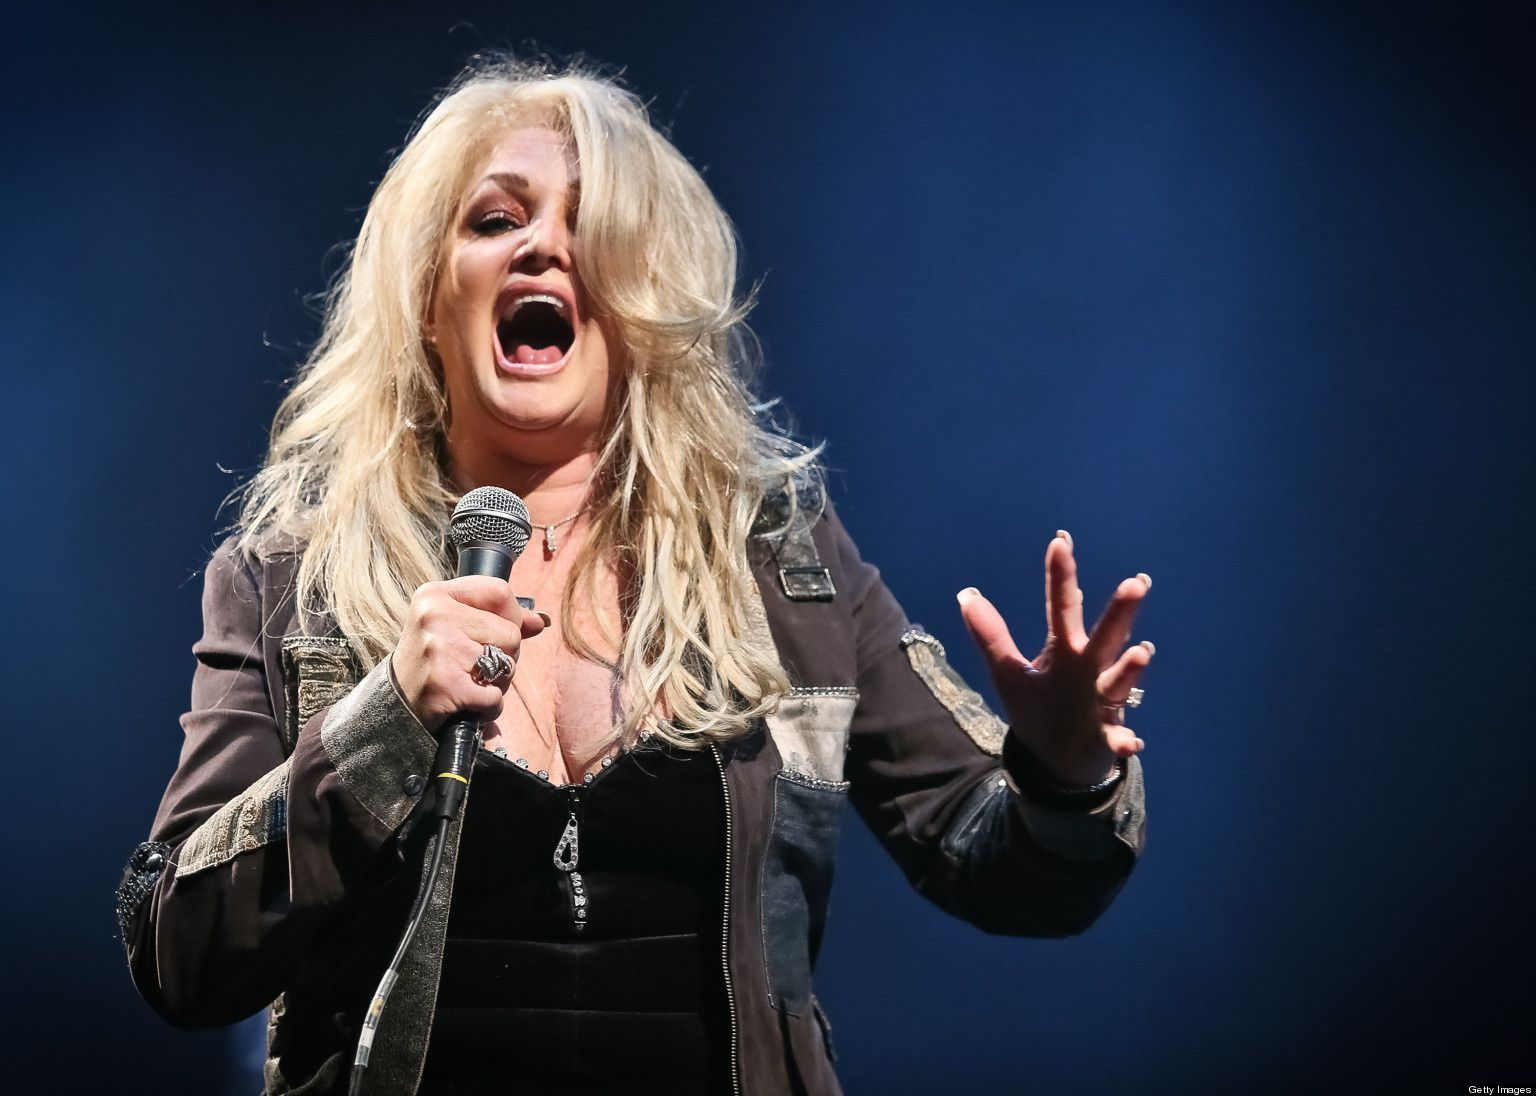 Bonnie Tyler - Live dates / Concerts - NEWS